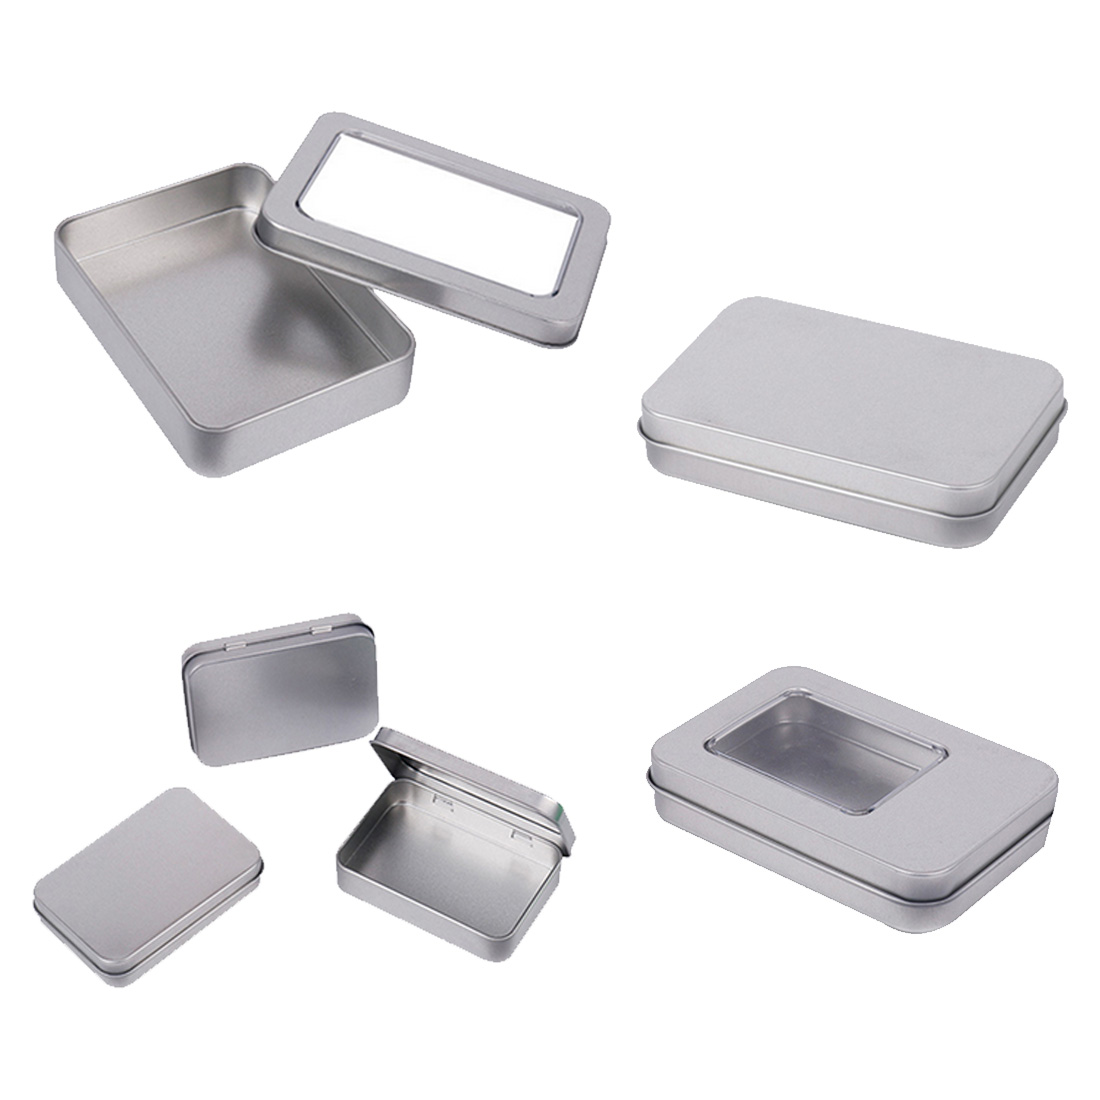 HIPSTEEN 88*60*18MM Tin Box Basic Rectangle Tinplate Box Coin Keys Storage Case Gift Box Silver ...